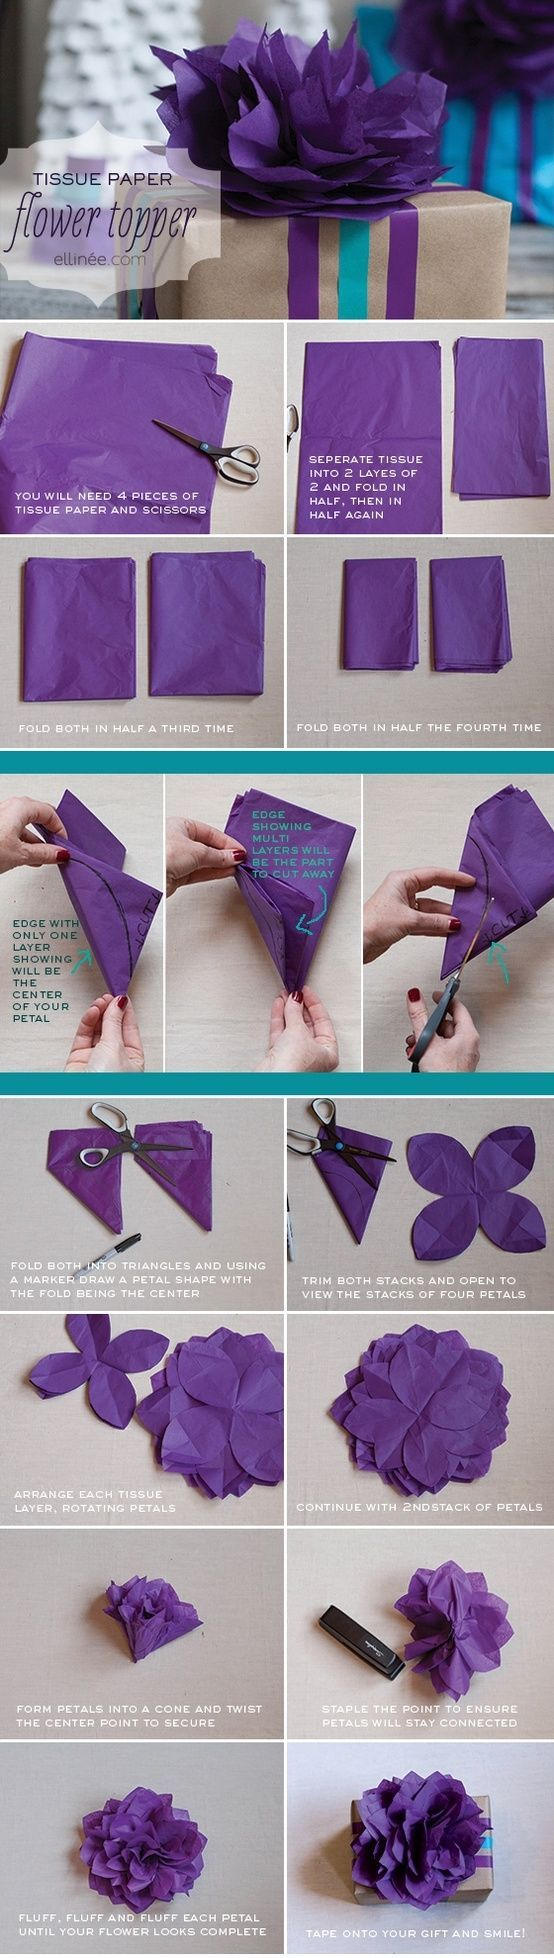 Paper Flower Flores Papel Pinterest Tissue Flowers Craft And